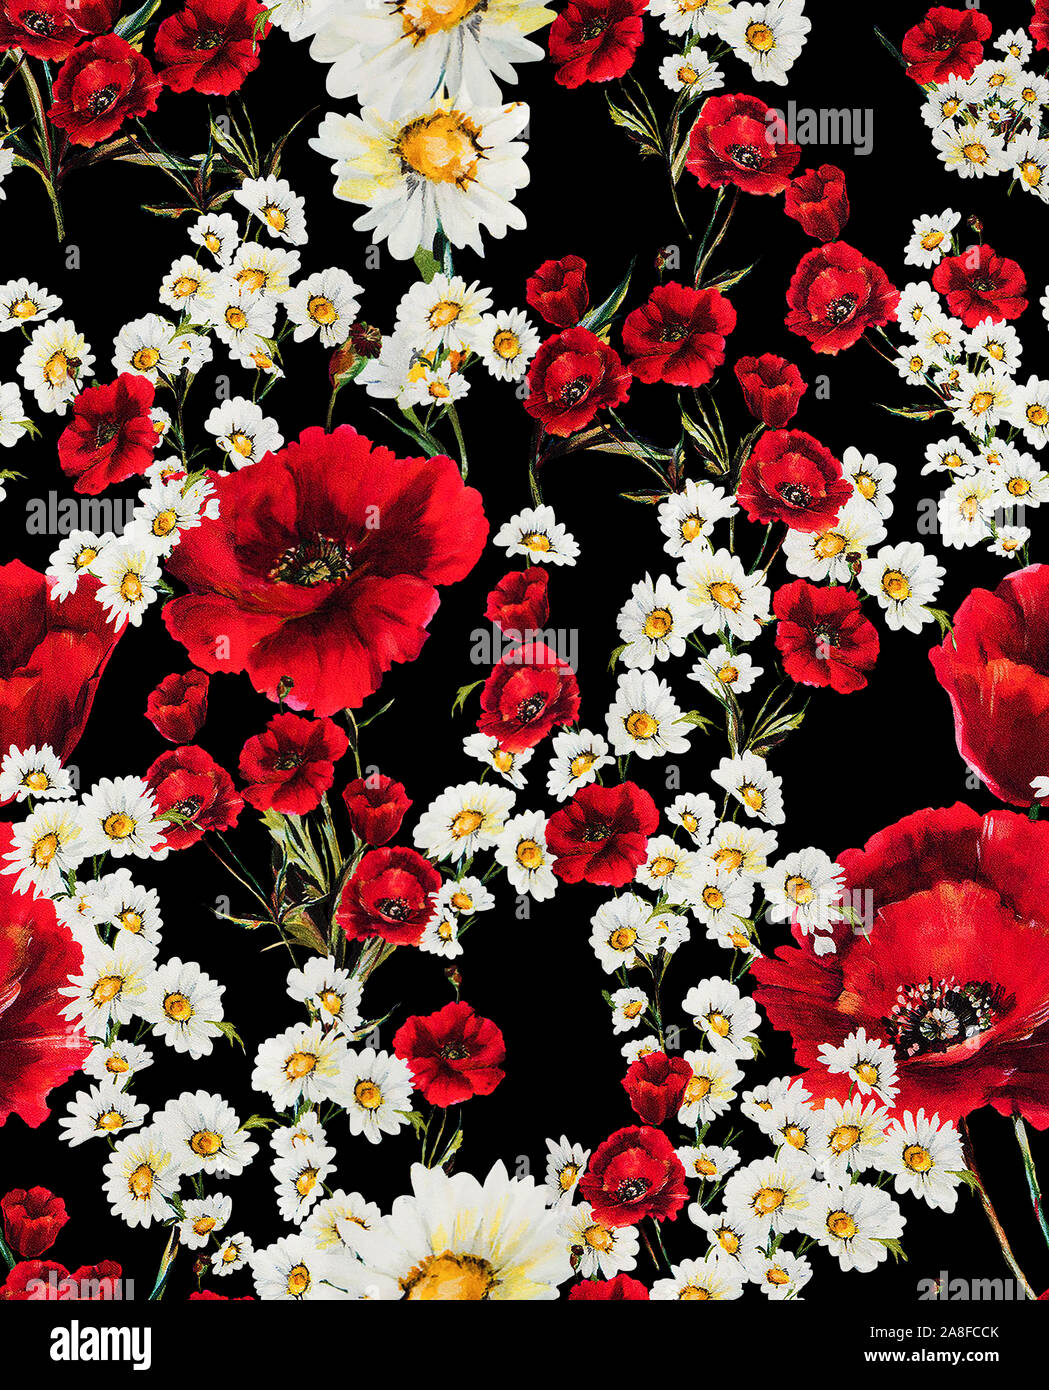 Seamless Floral Pattern With Red Flowers And White Daisy On Black